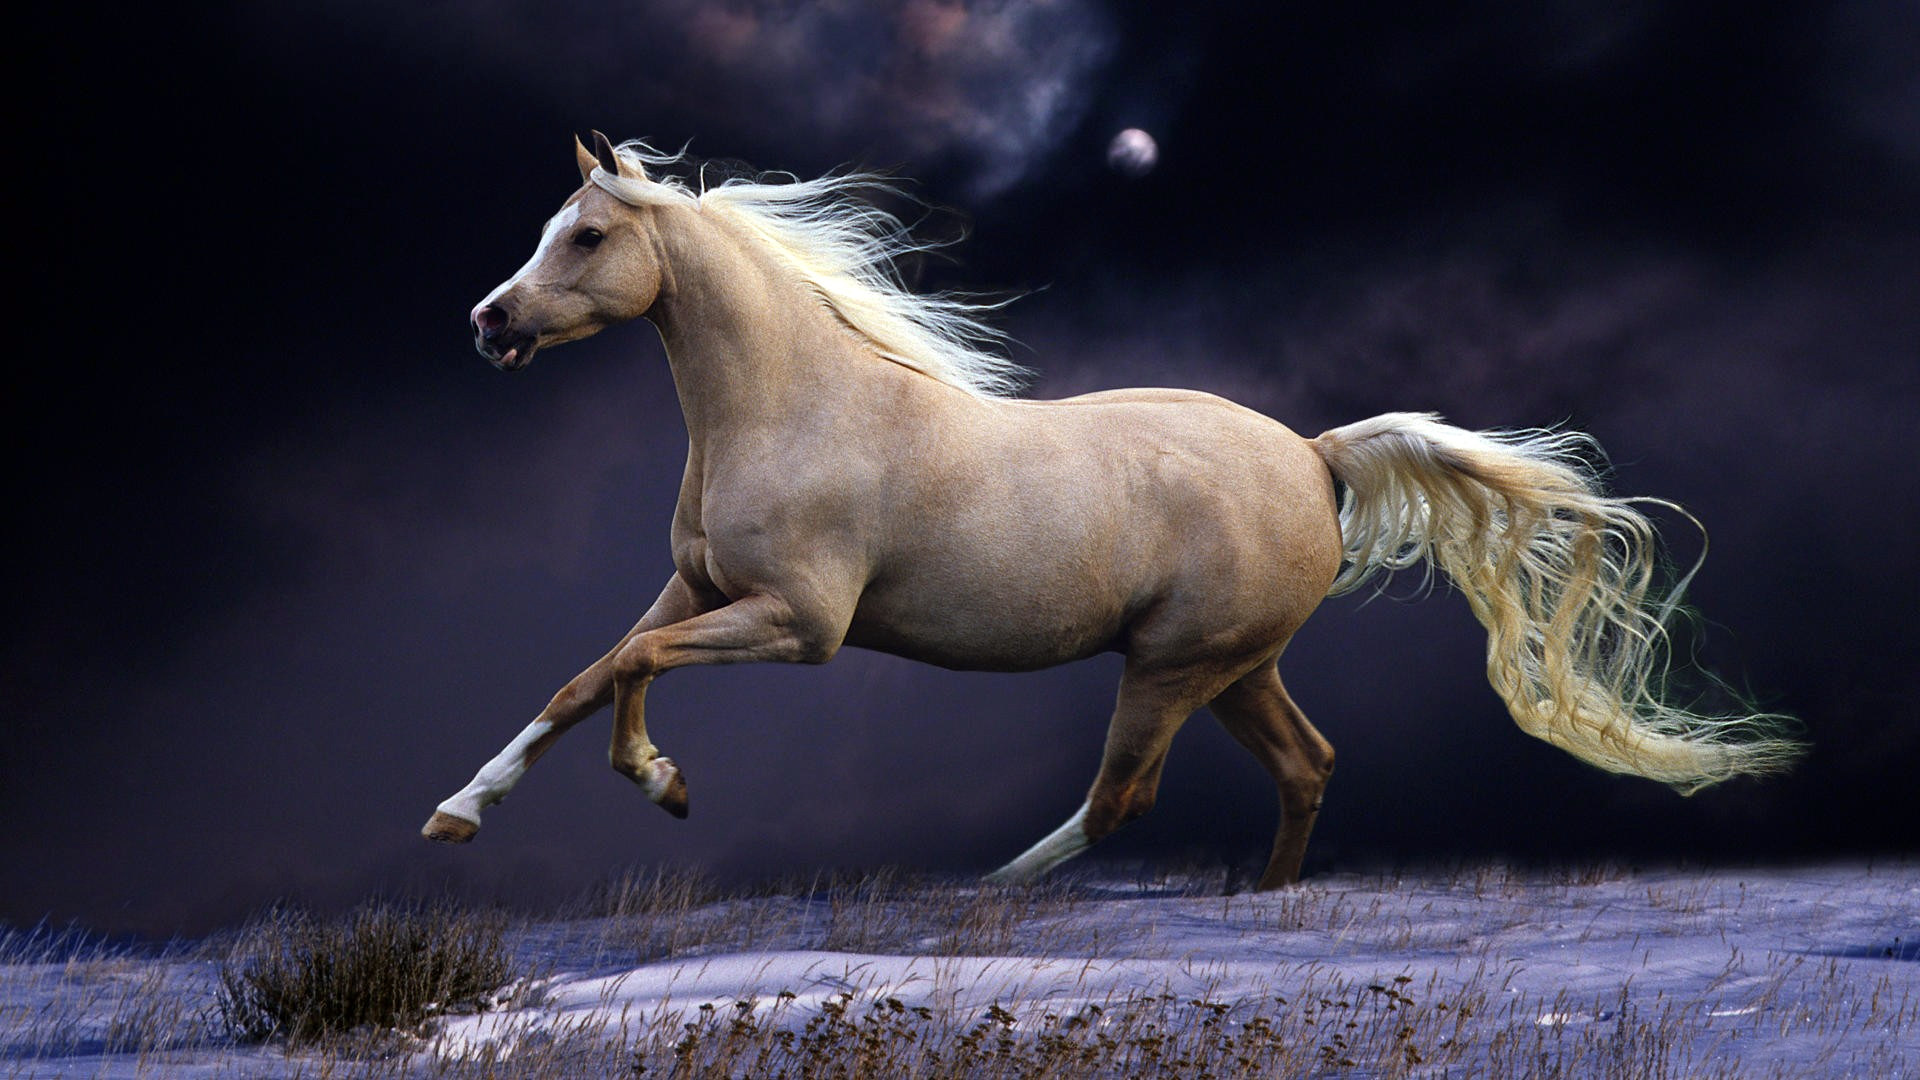 2560x1440 Horse Mane Running 1440p Resolution Wallpaper Hd Animals 4k Wallpapers Images Photos And Background Wallpapers Den